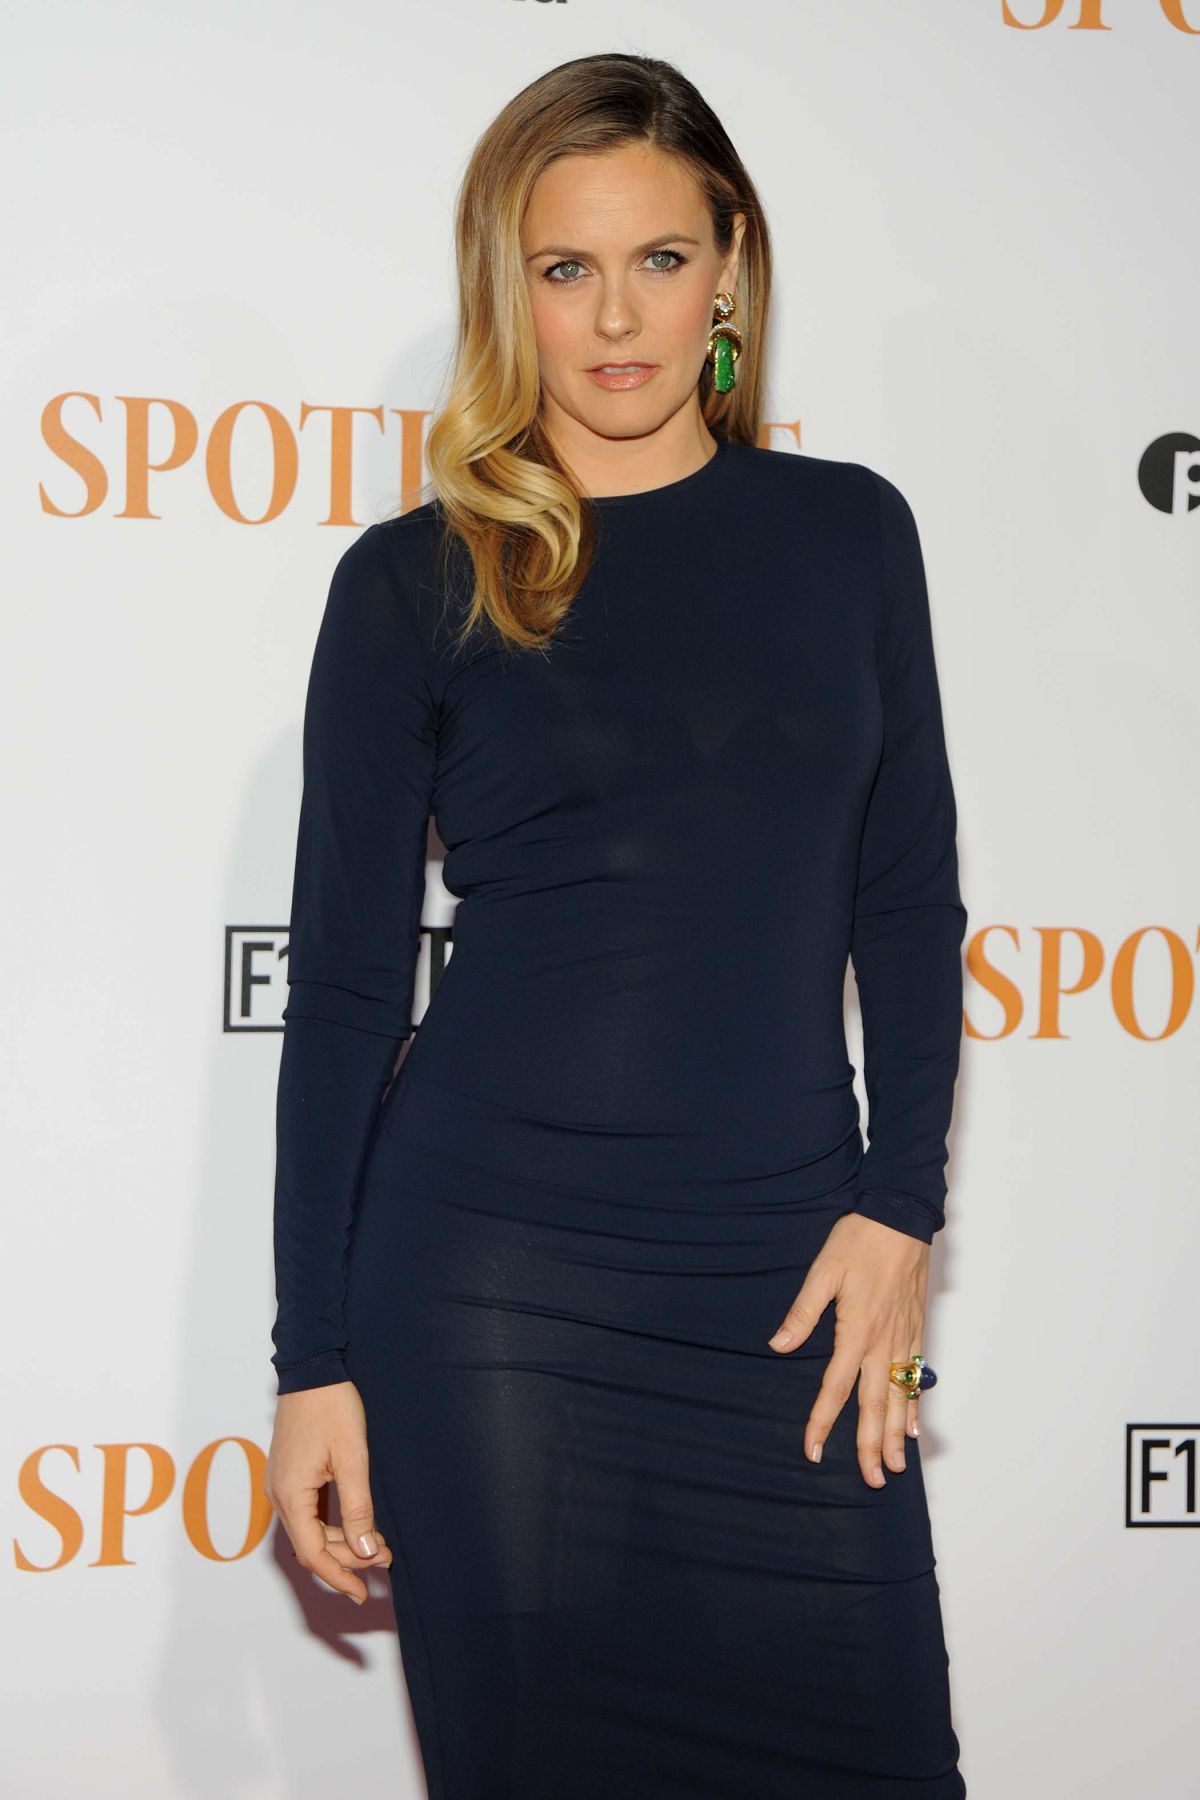 ALICIA SILVERSTONE at Spotlight Premiere in New York 10/27/2015